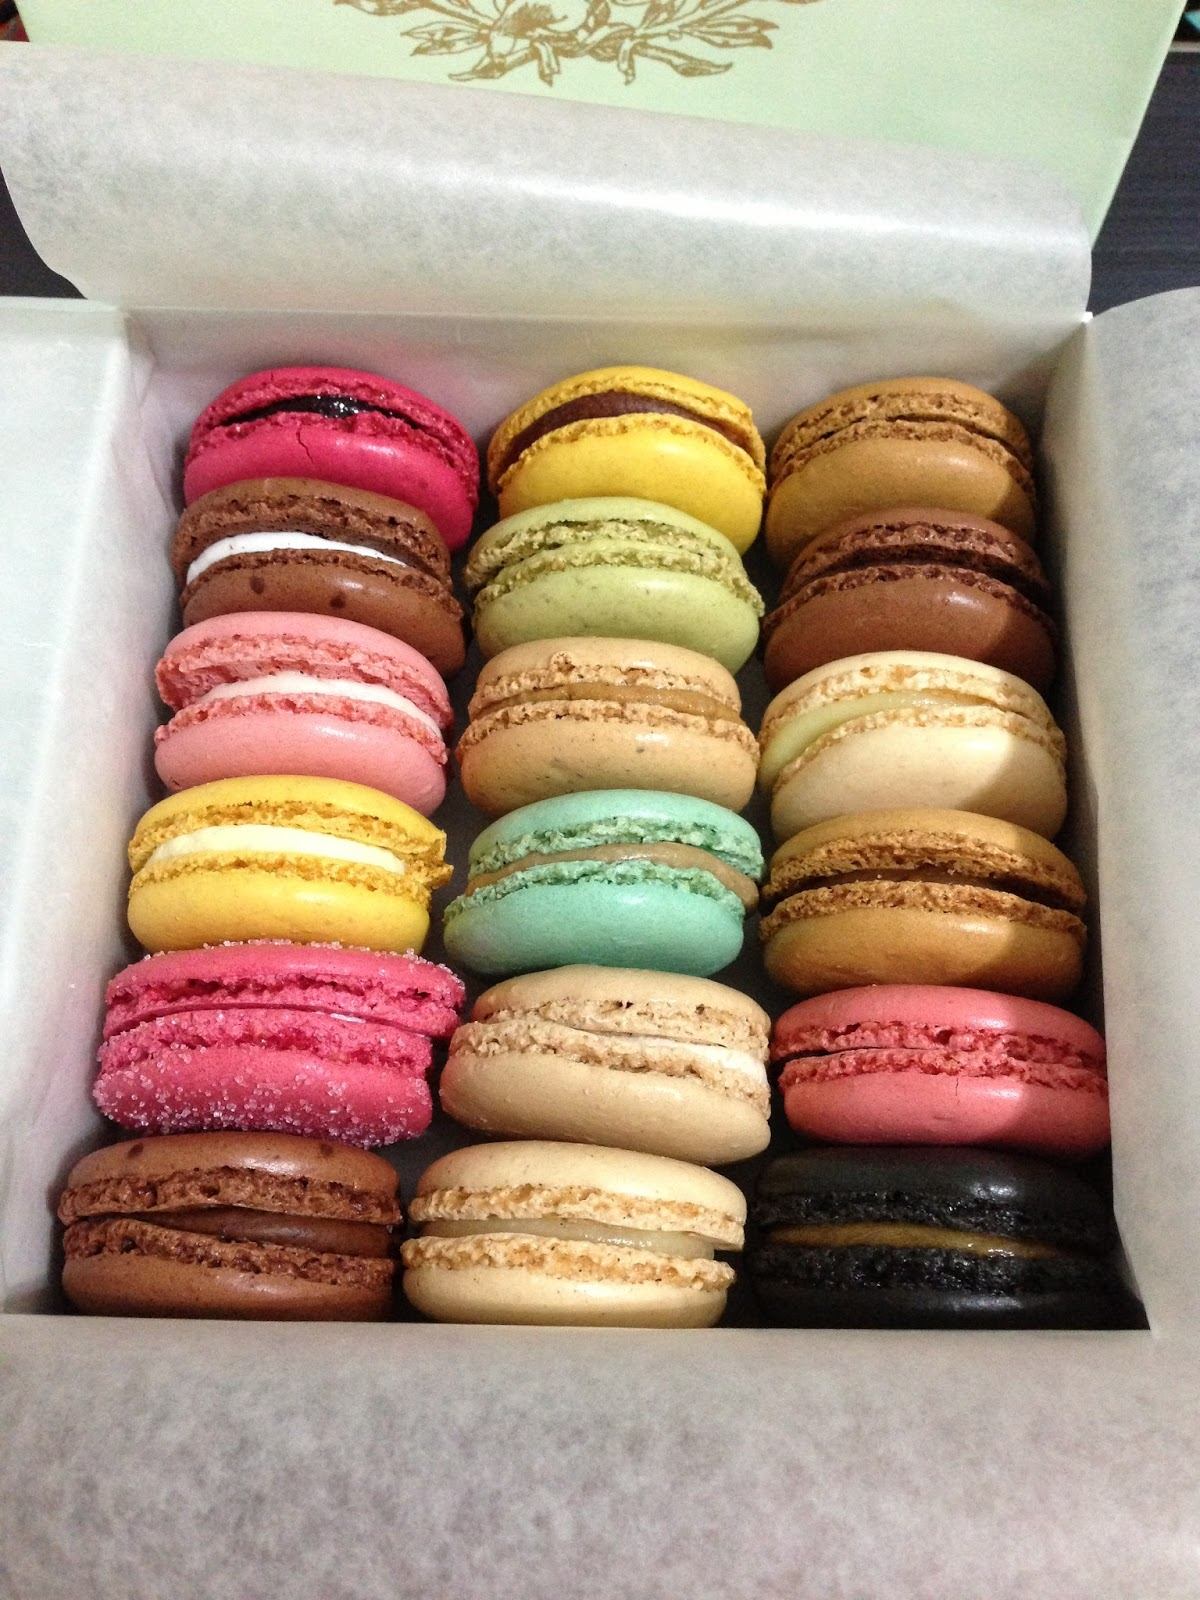 ... that i think i am finally going to end my summer fling with macaroons